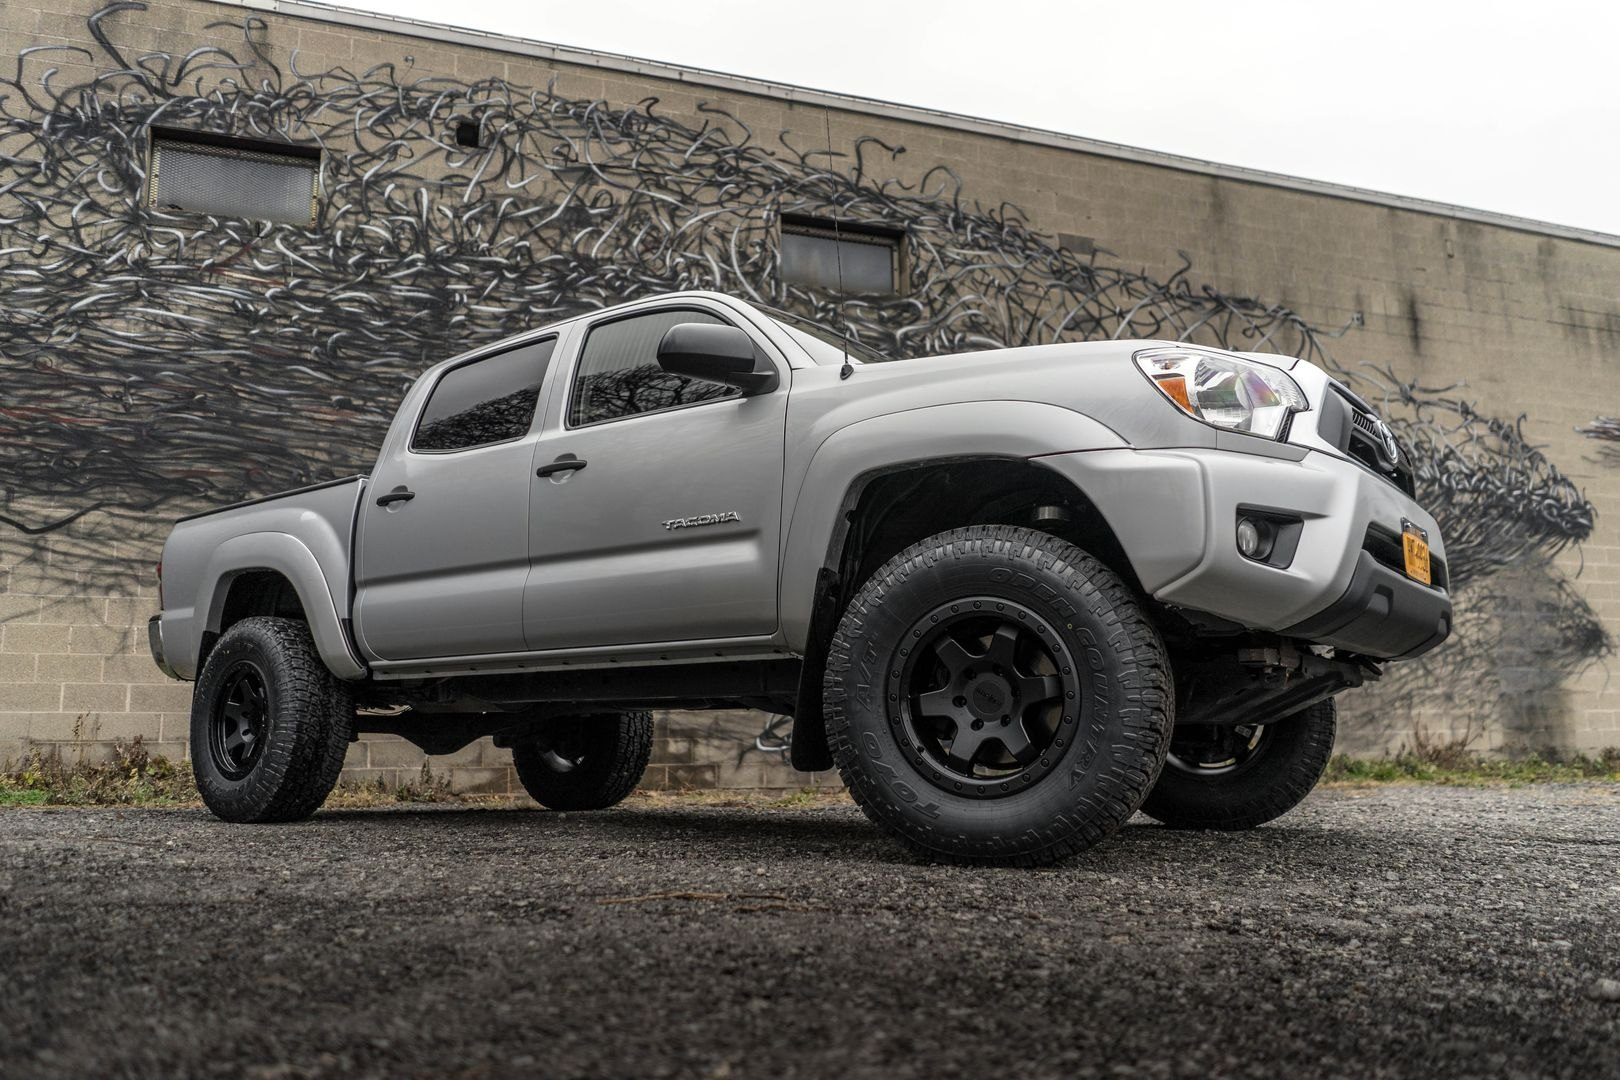 rotiform six off road rims on lifted toyota tacoma truck. Black Bedroom Furniture Sets. Home Design Ideas